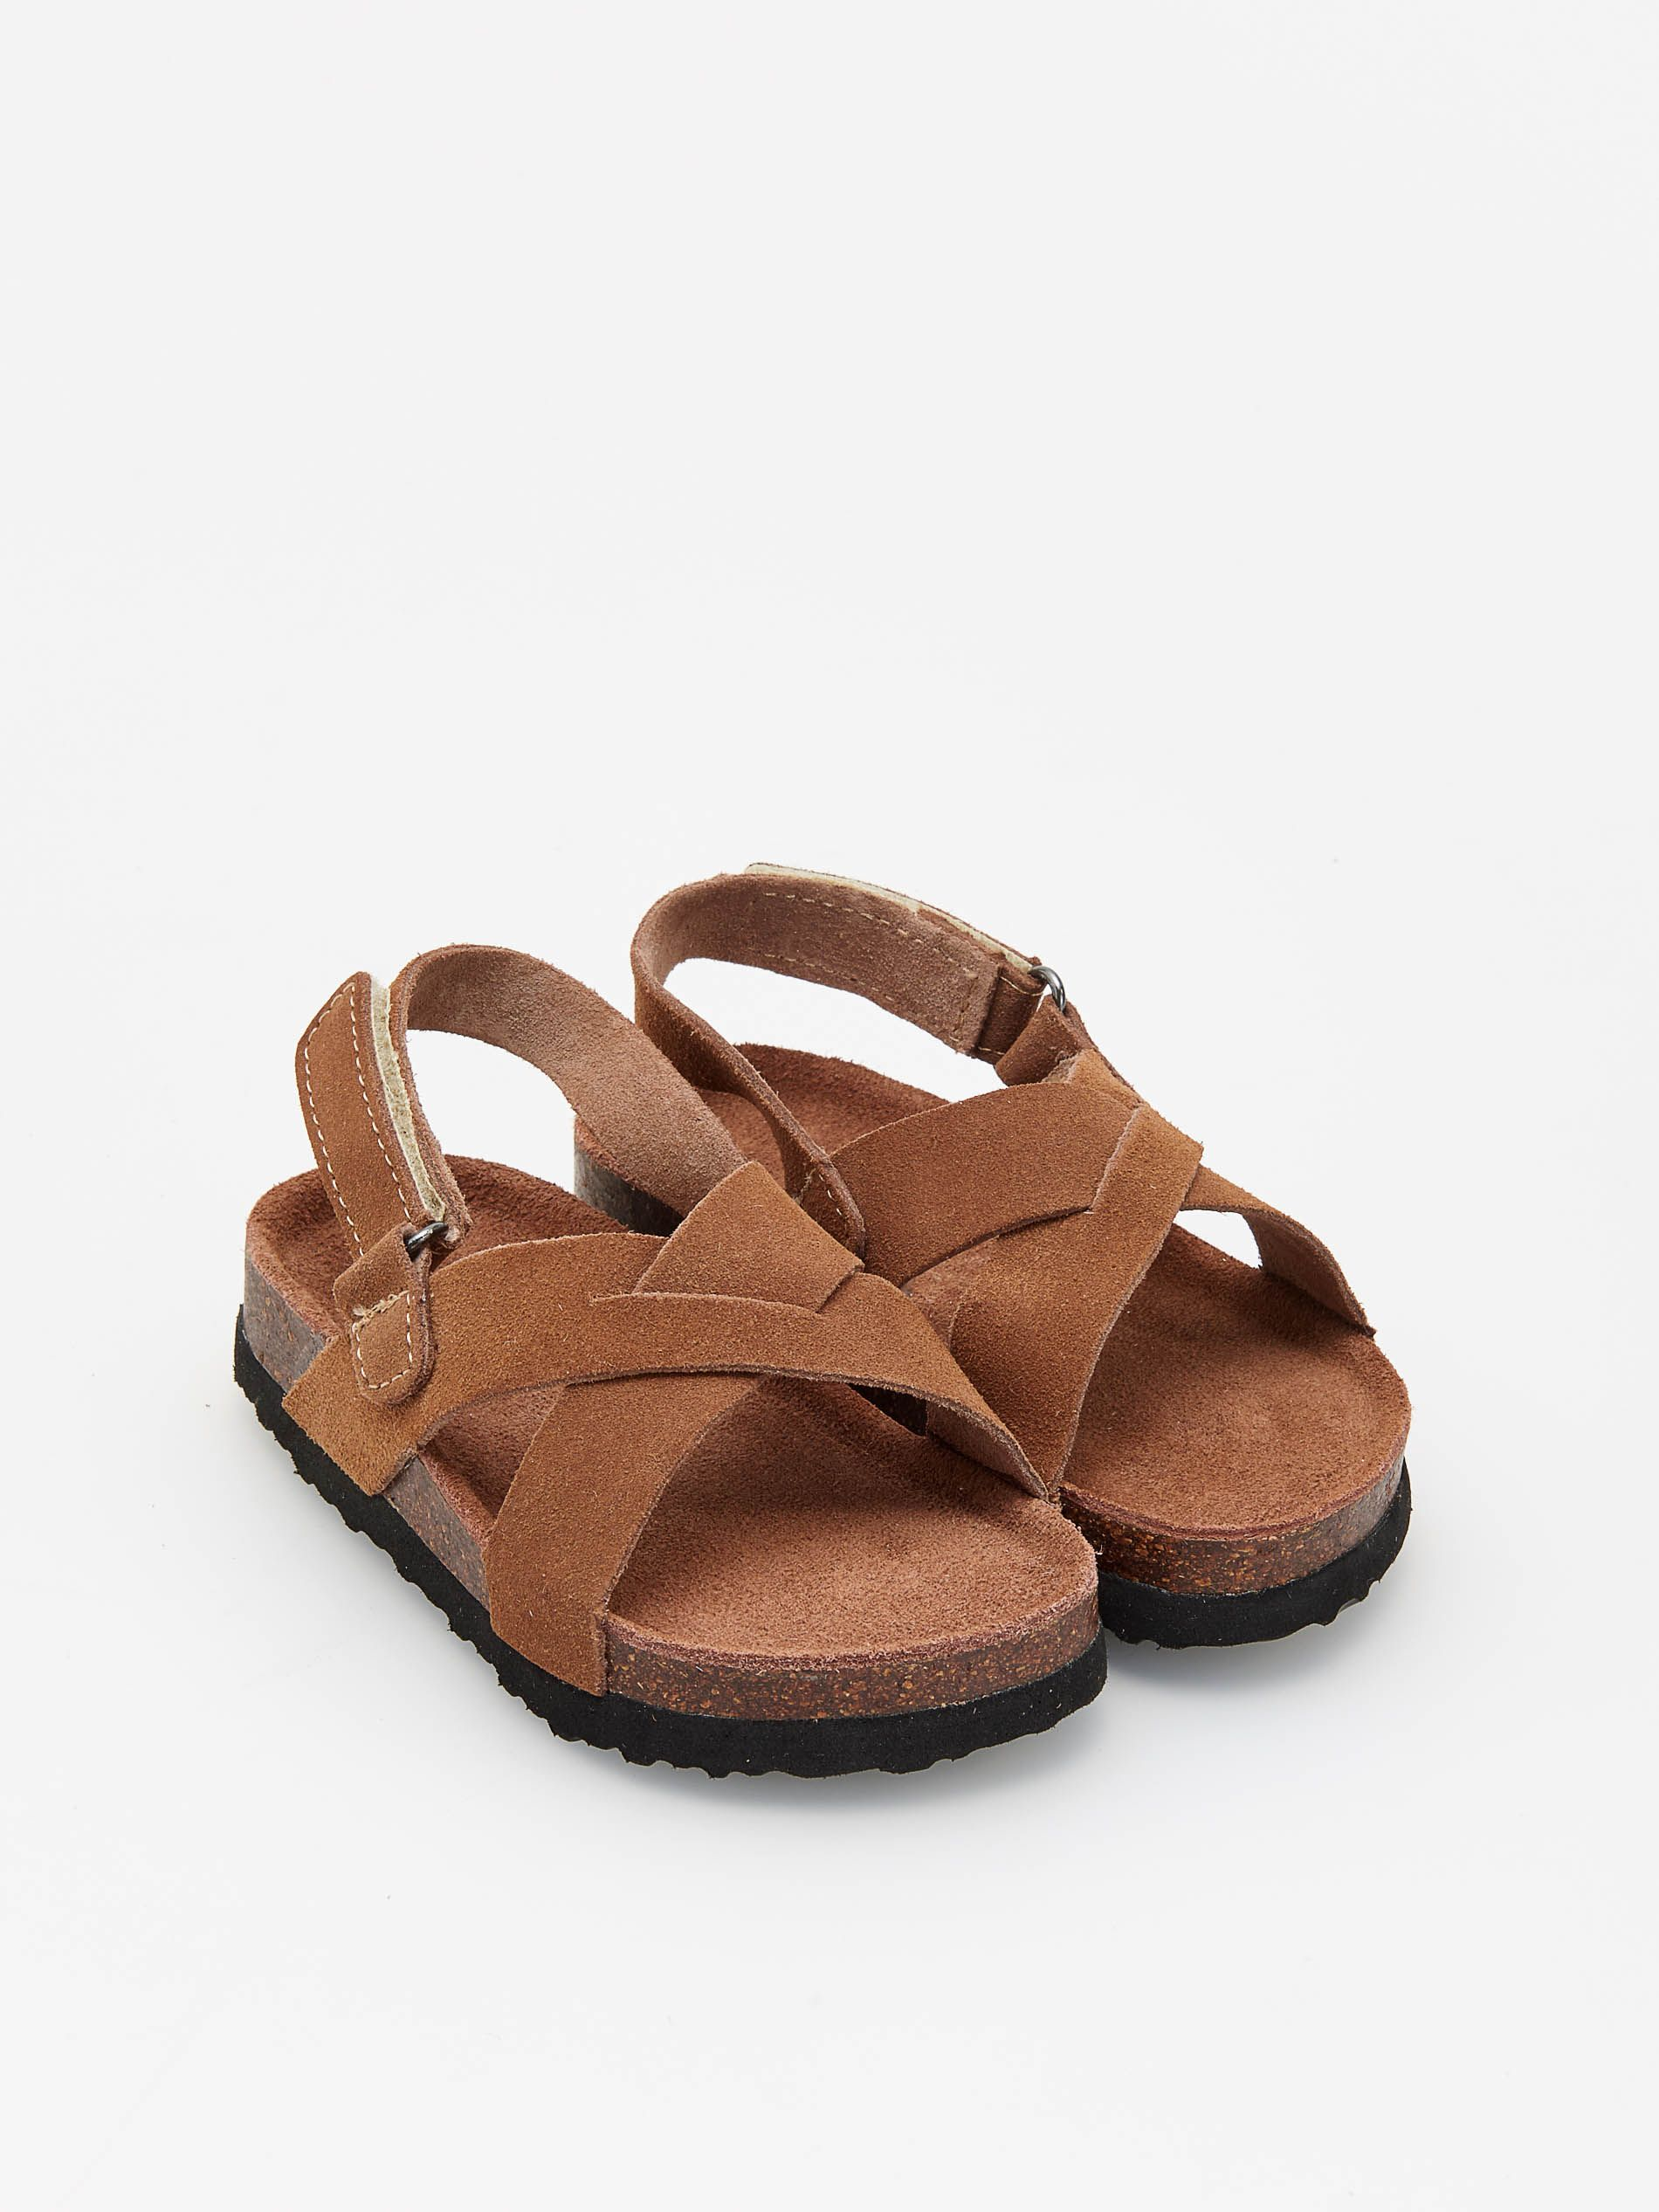 Skorzane Sandaly Reserved Vc470 88x Leather Sandals Sandals Shoes